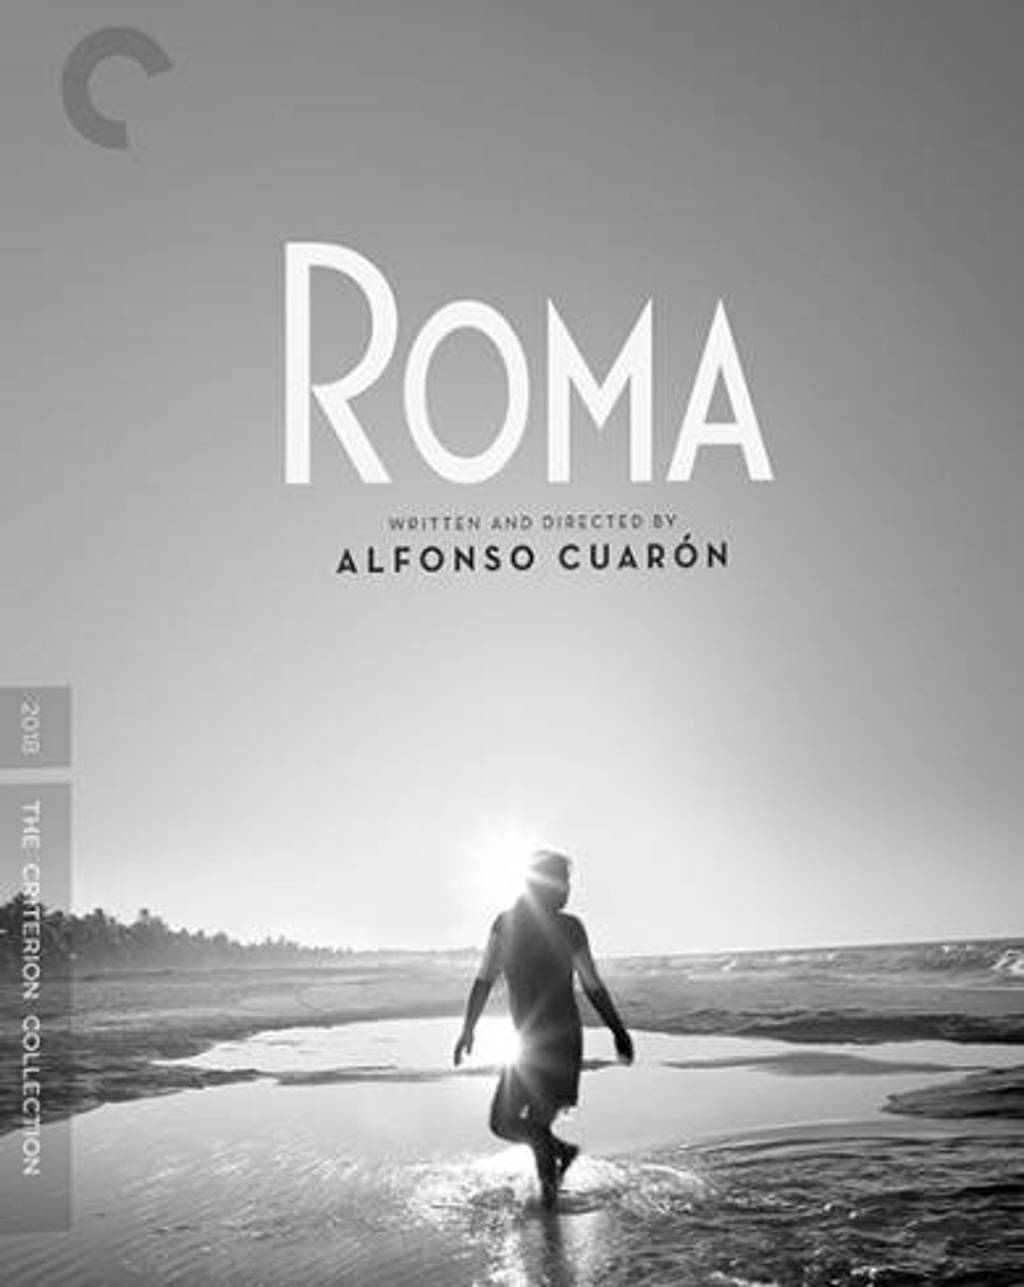 Roma (Special edition) (Blu-ray)